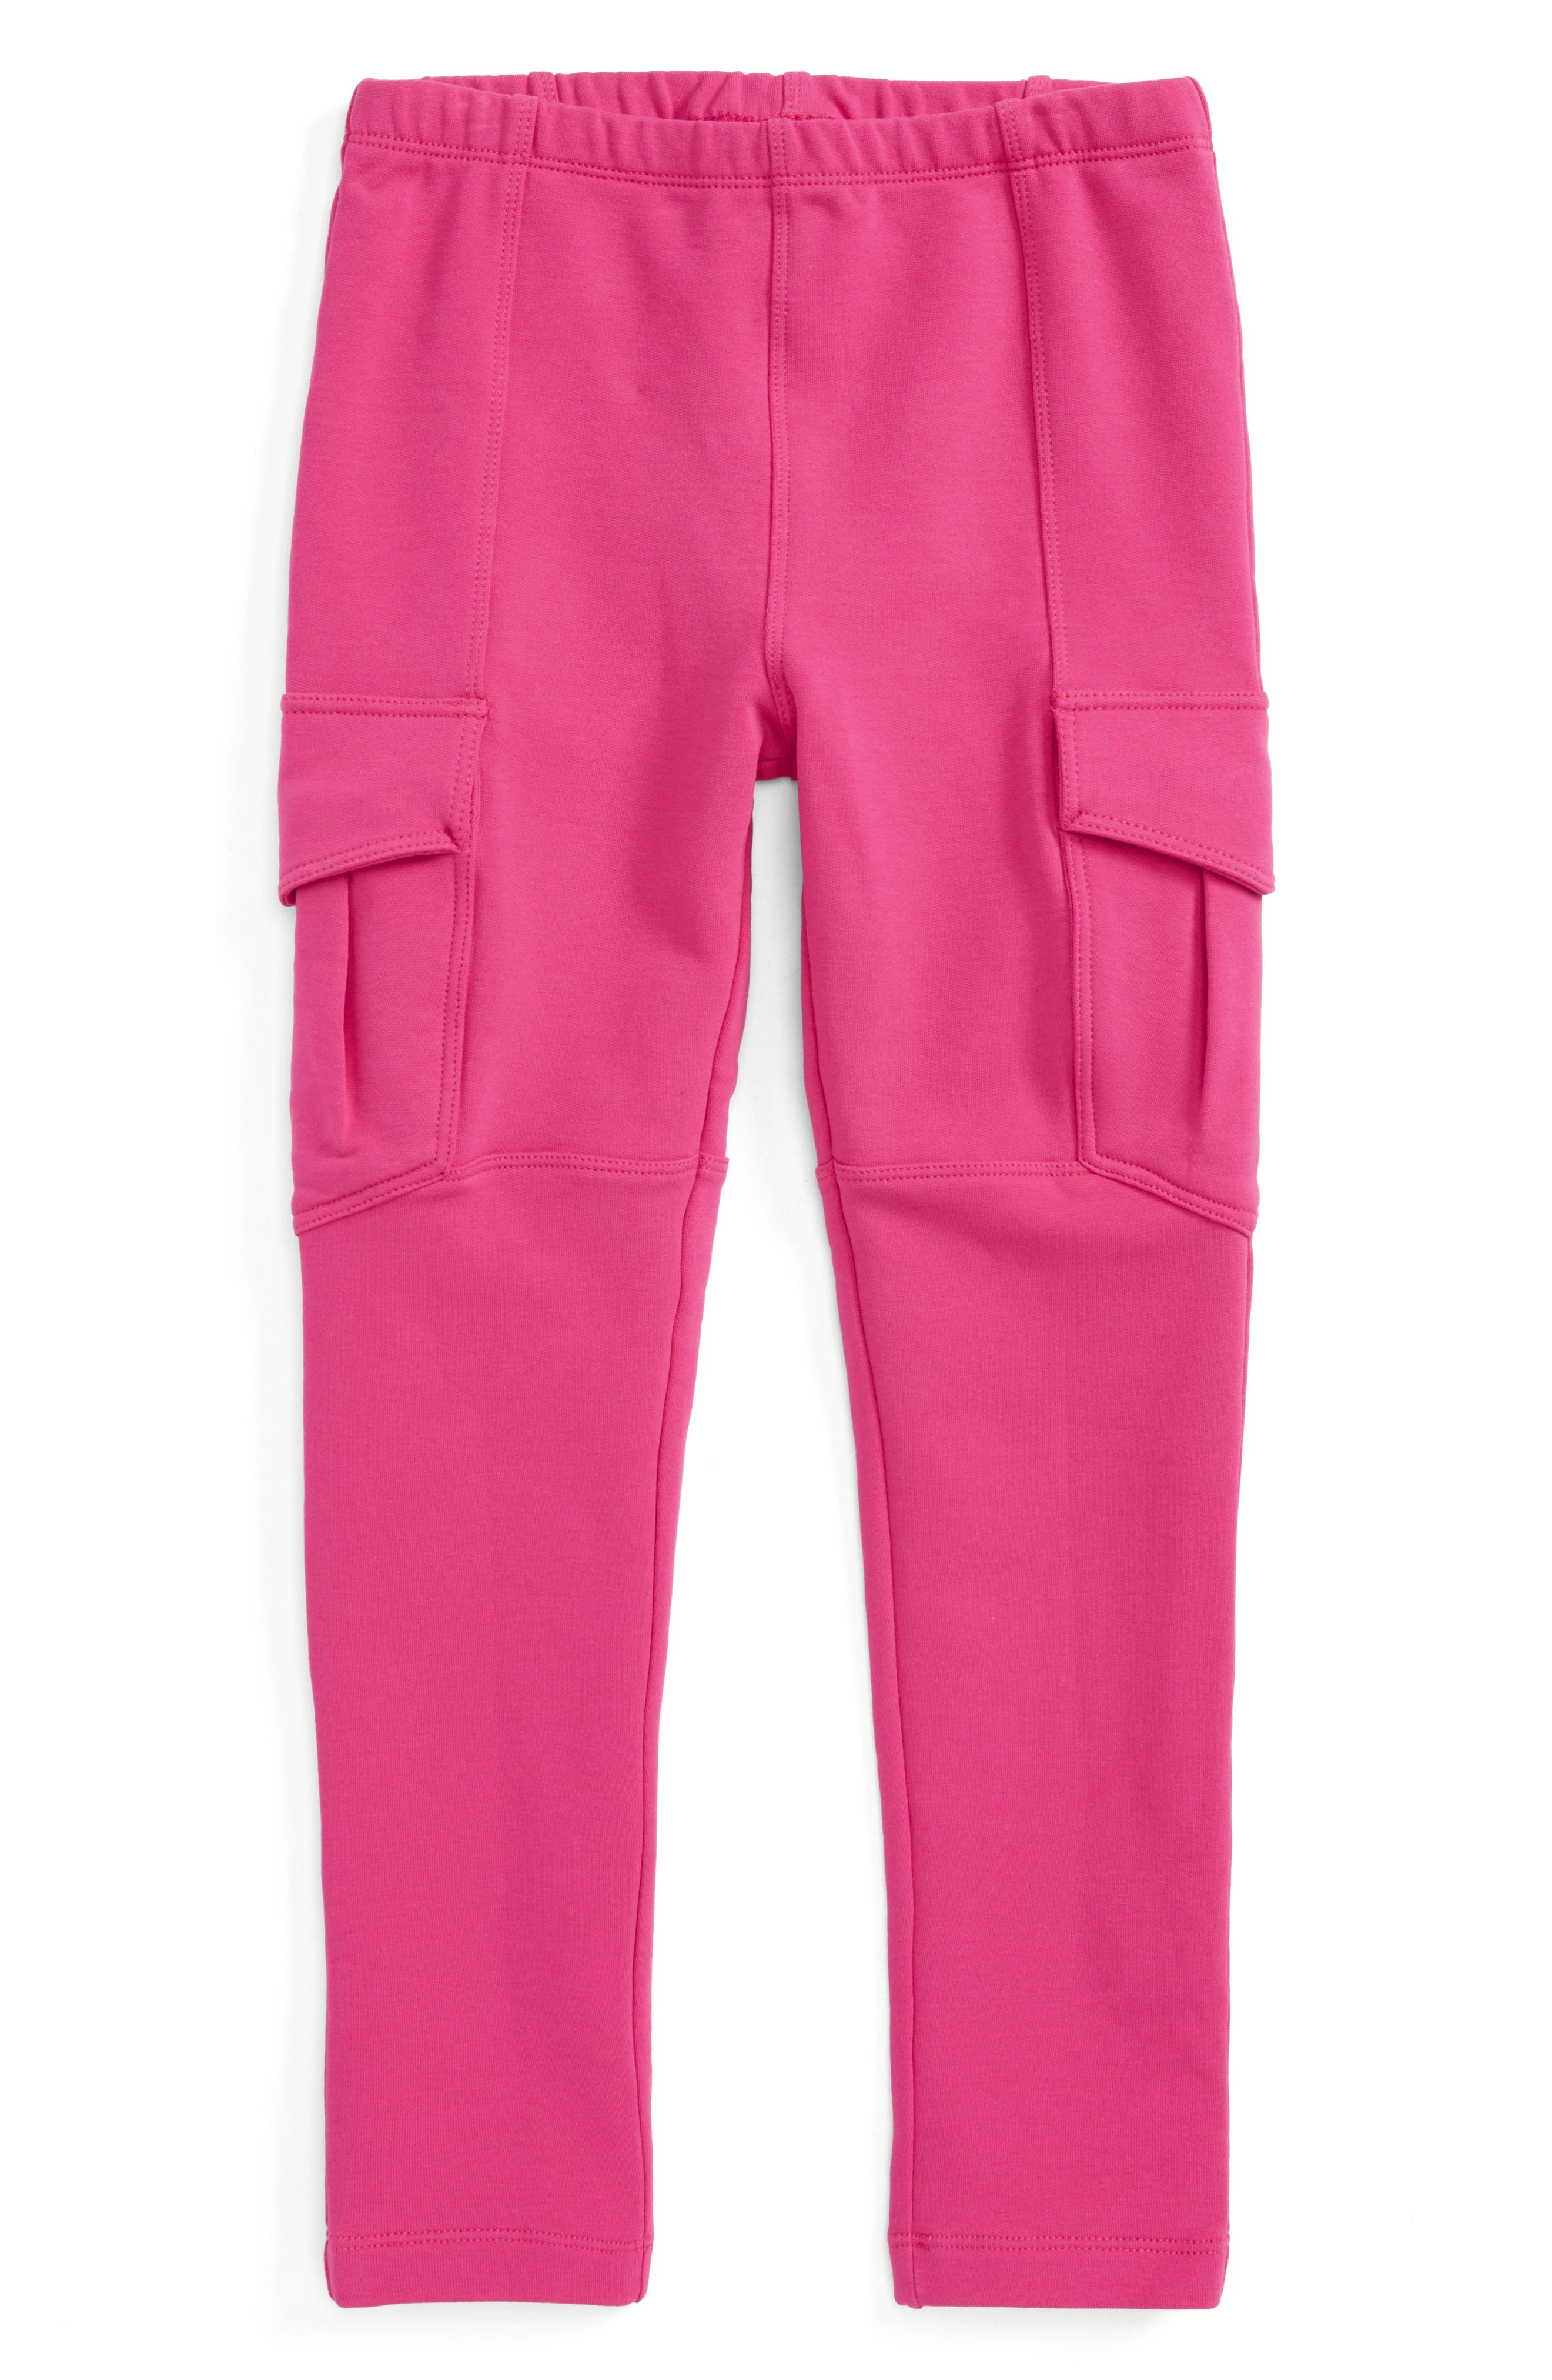 Main Image - Tea Collection French Terry Cargo Pants (Toddler Girls, Little Girls & Big Girls)